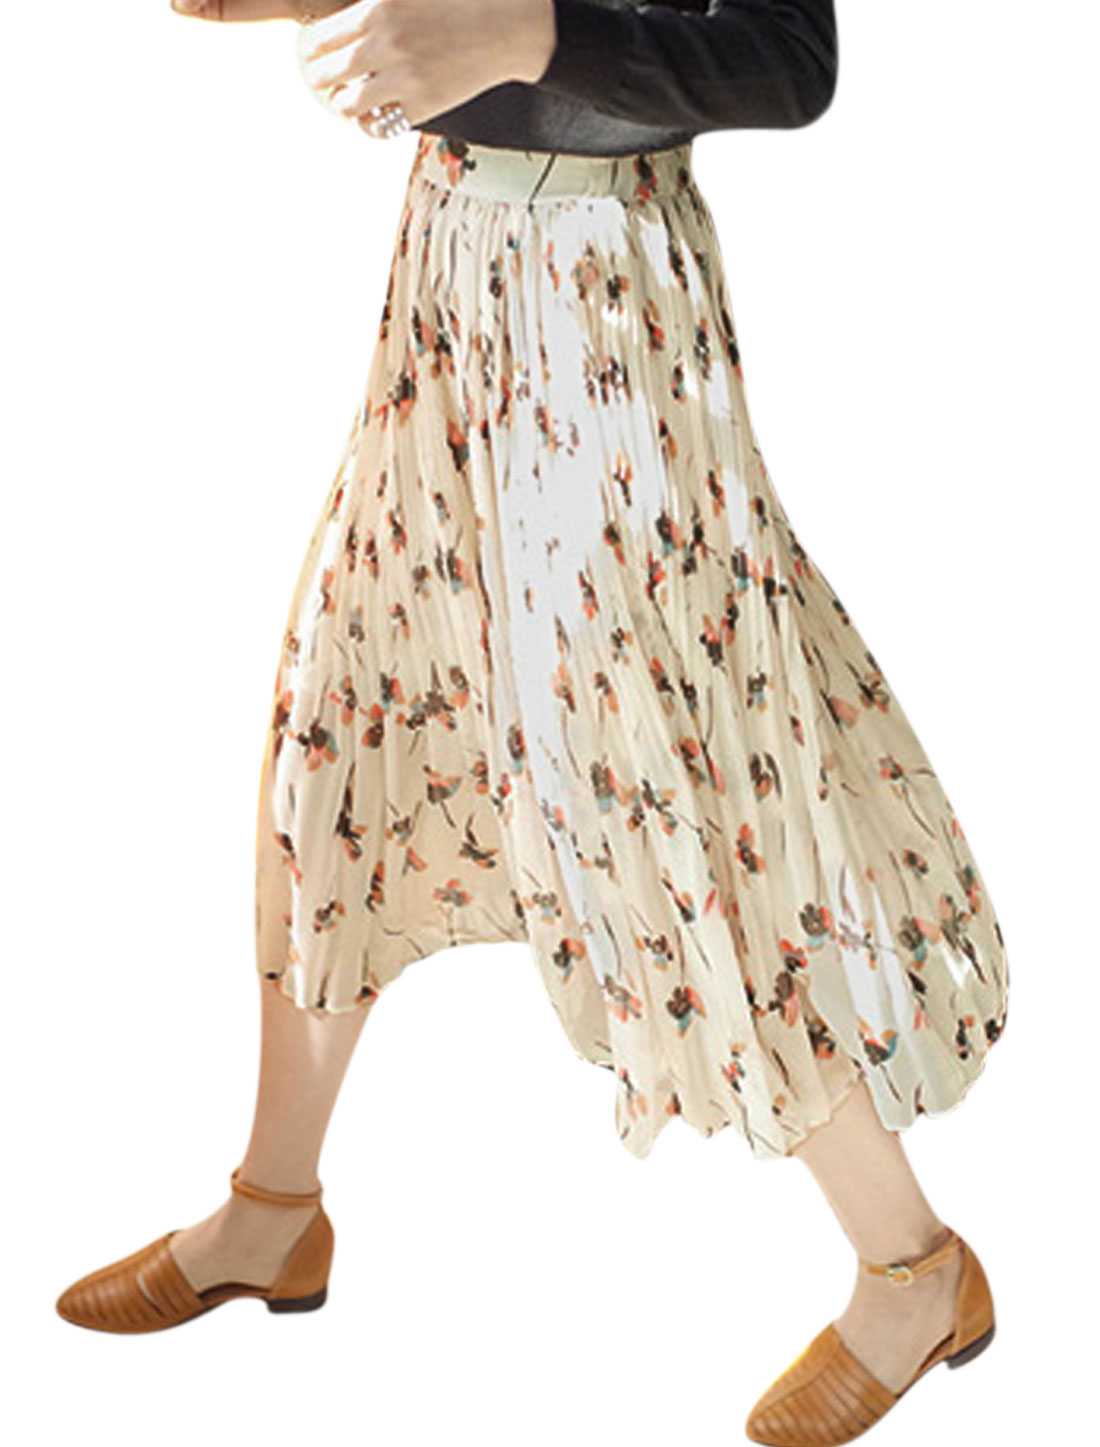 Lady Floral Prints Stretchy Waist Fully Lined Chiffon Pleated Skirt Beige XS